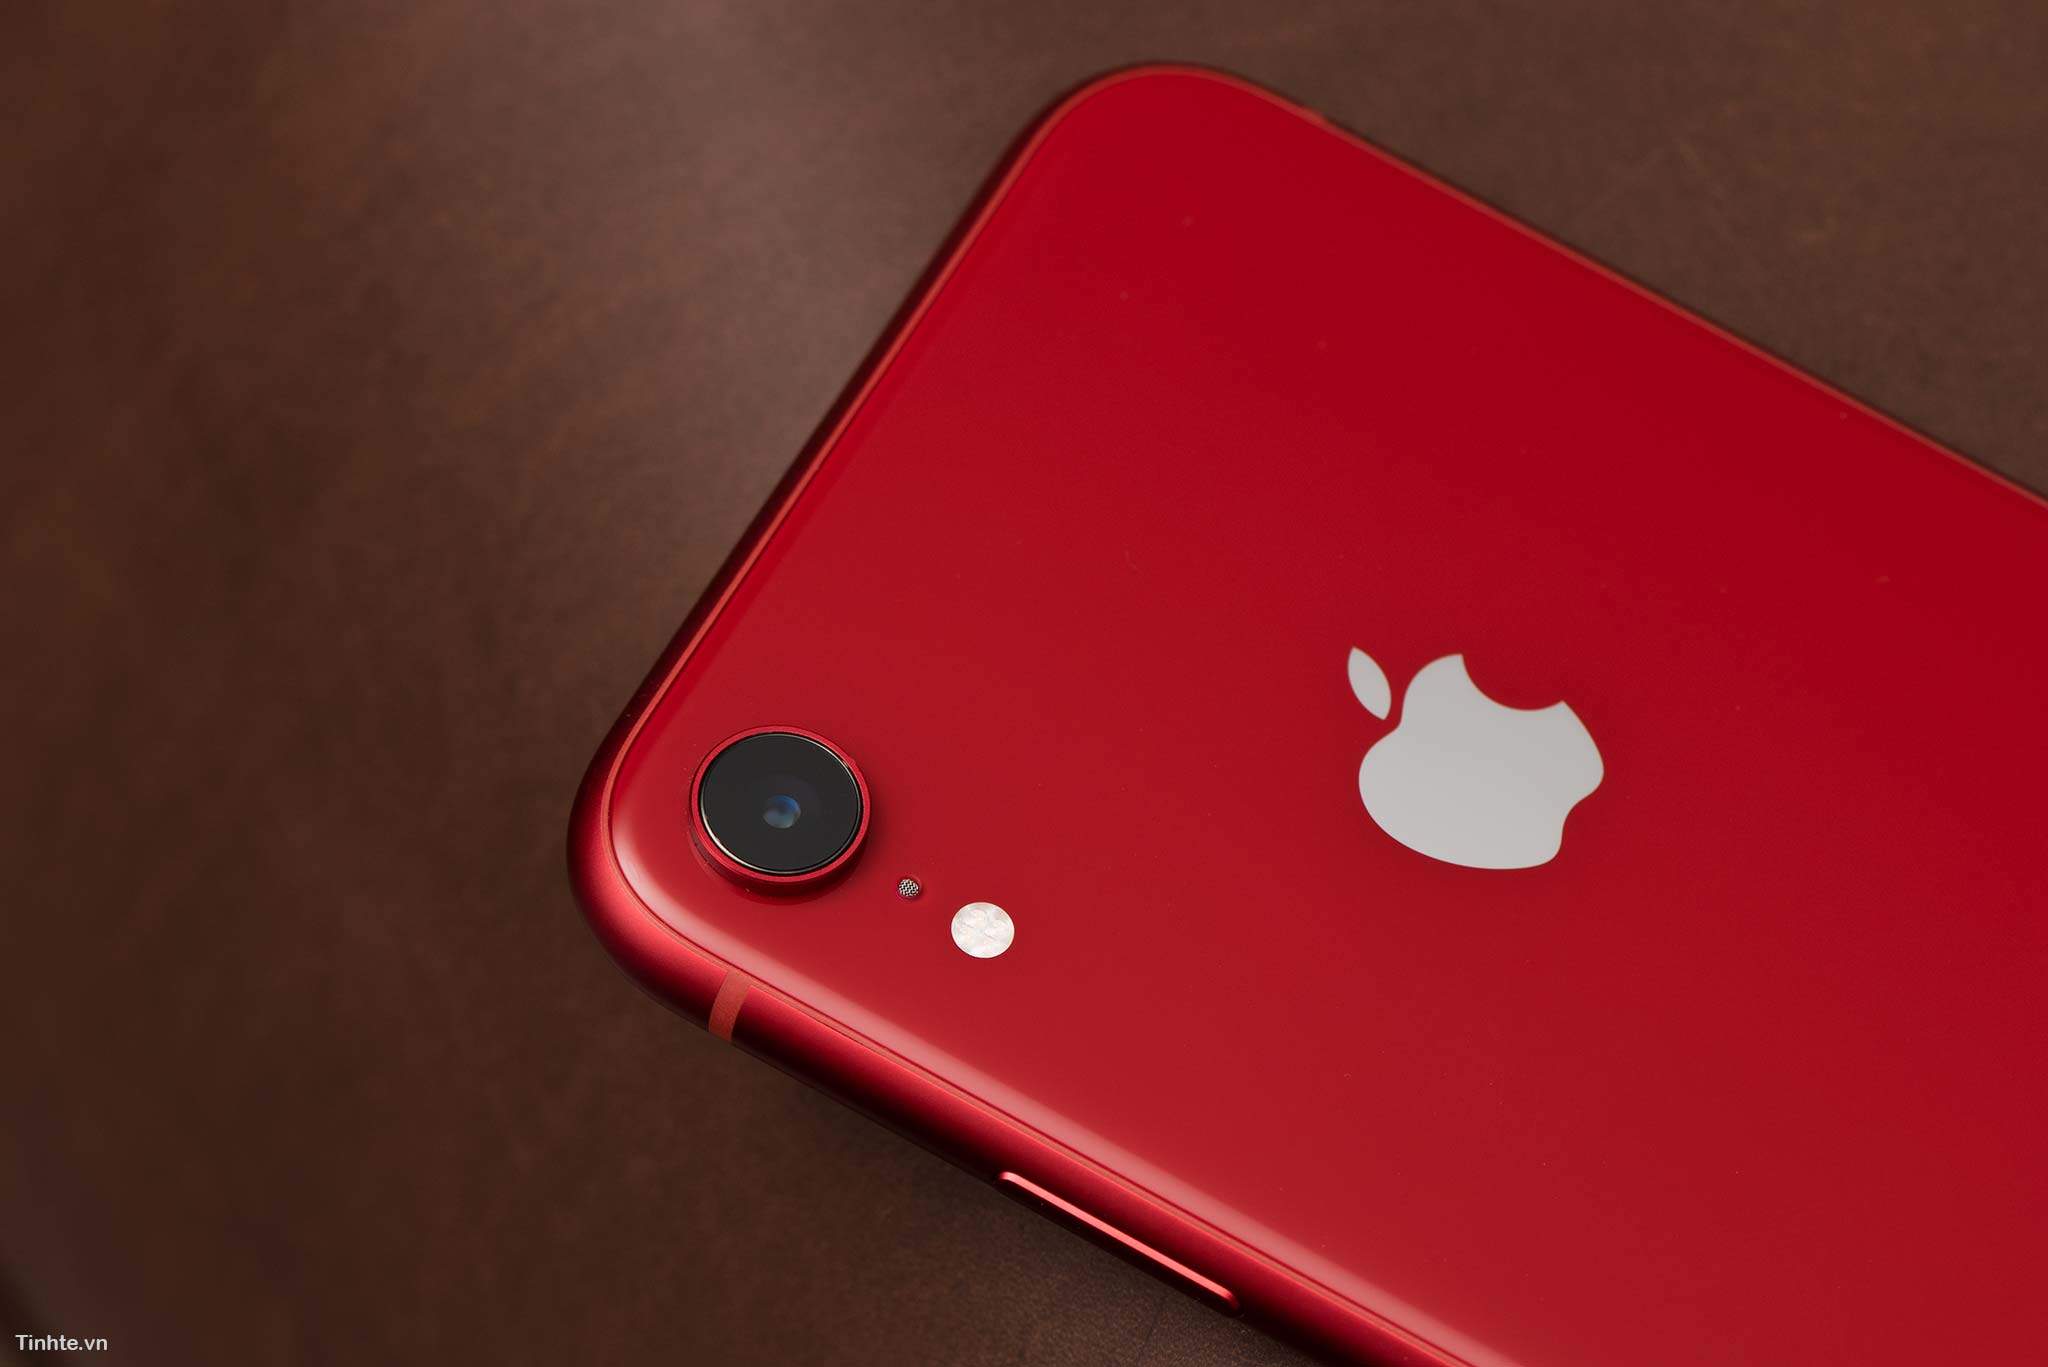 tinhte_tren_tay_iphone_xr_product_red_6.jpg